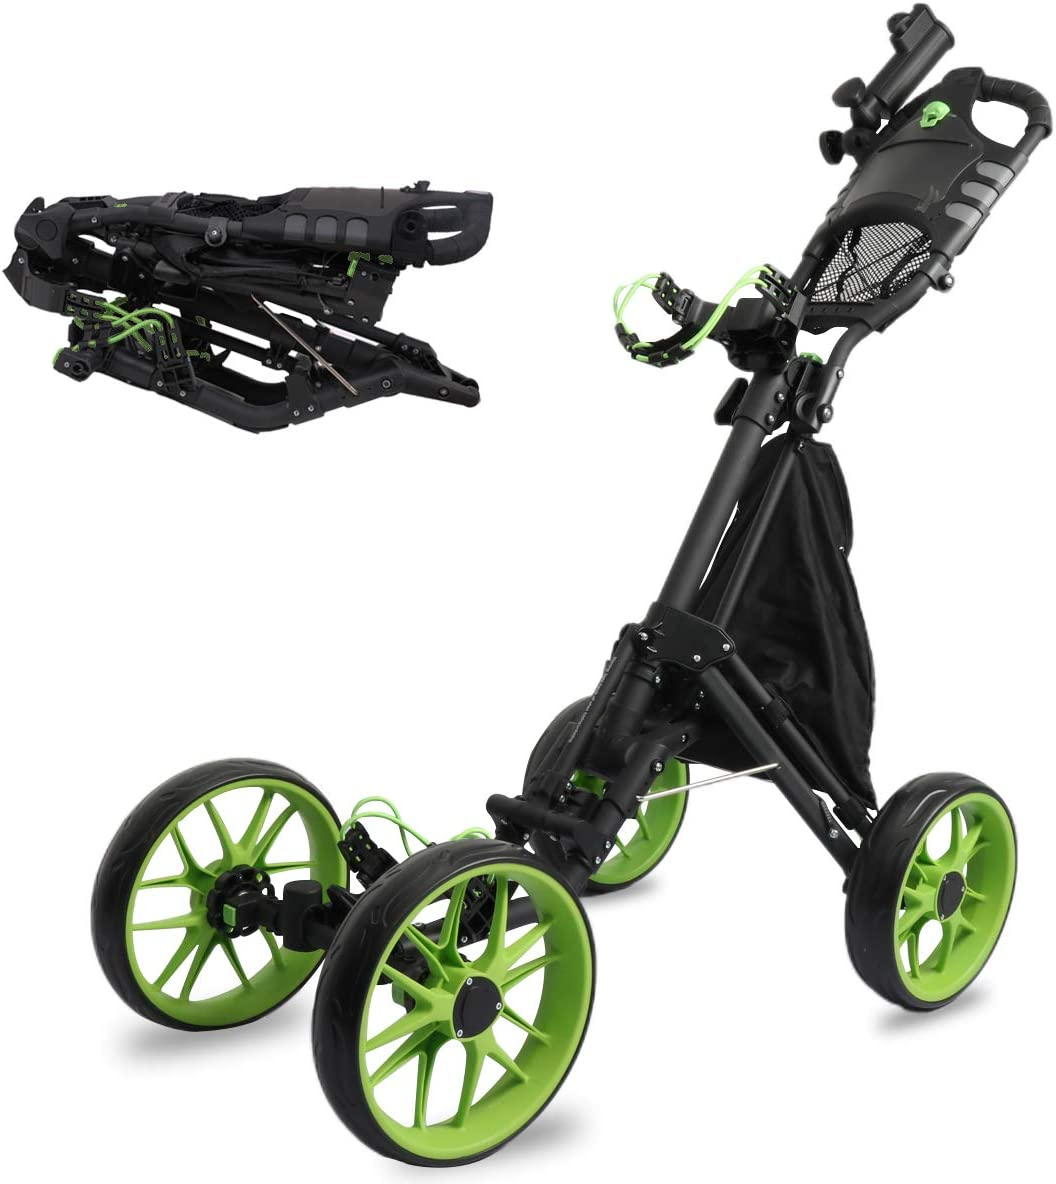 MEARTEVE 4 Wheel Golf Push Pull Cart, One Click Folding Compact Golf Push Cart with Umbrella Stand, Foot Brake, Smooth Wheel, Storage Bag, Scorecard Holder Space for Placing Golf Bag